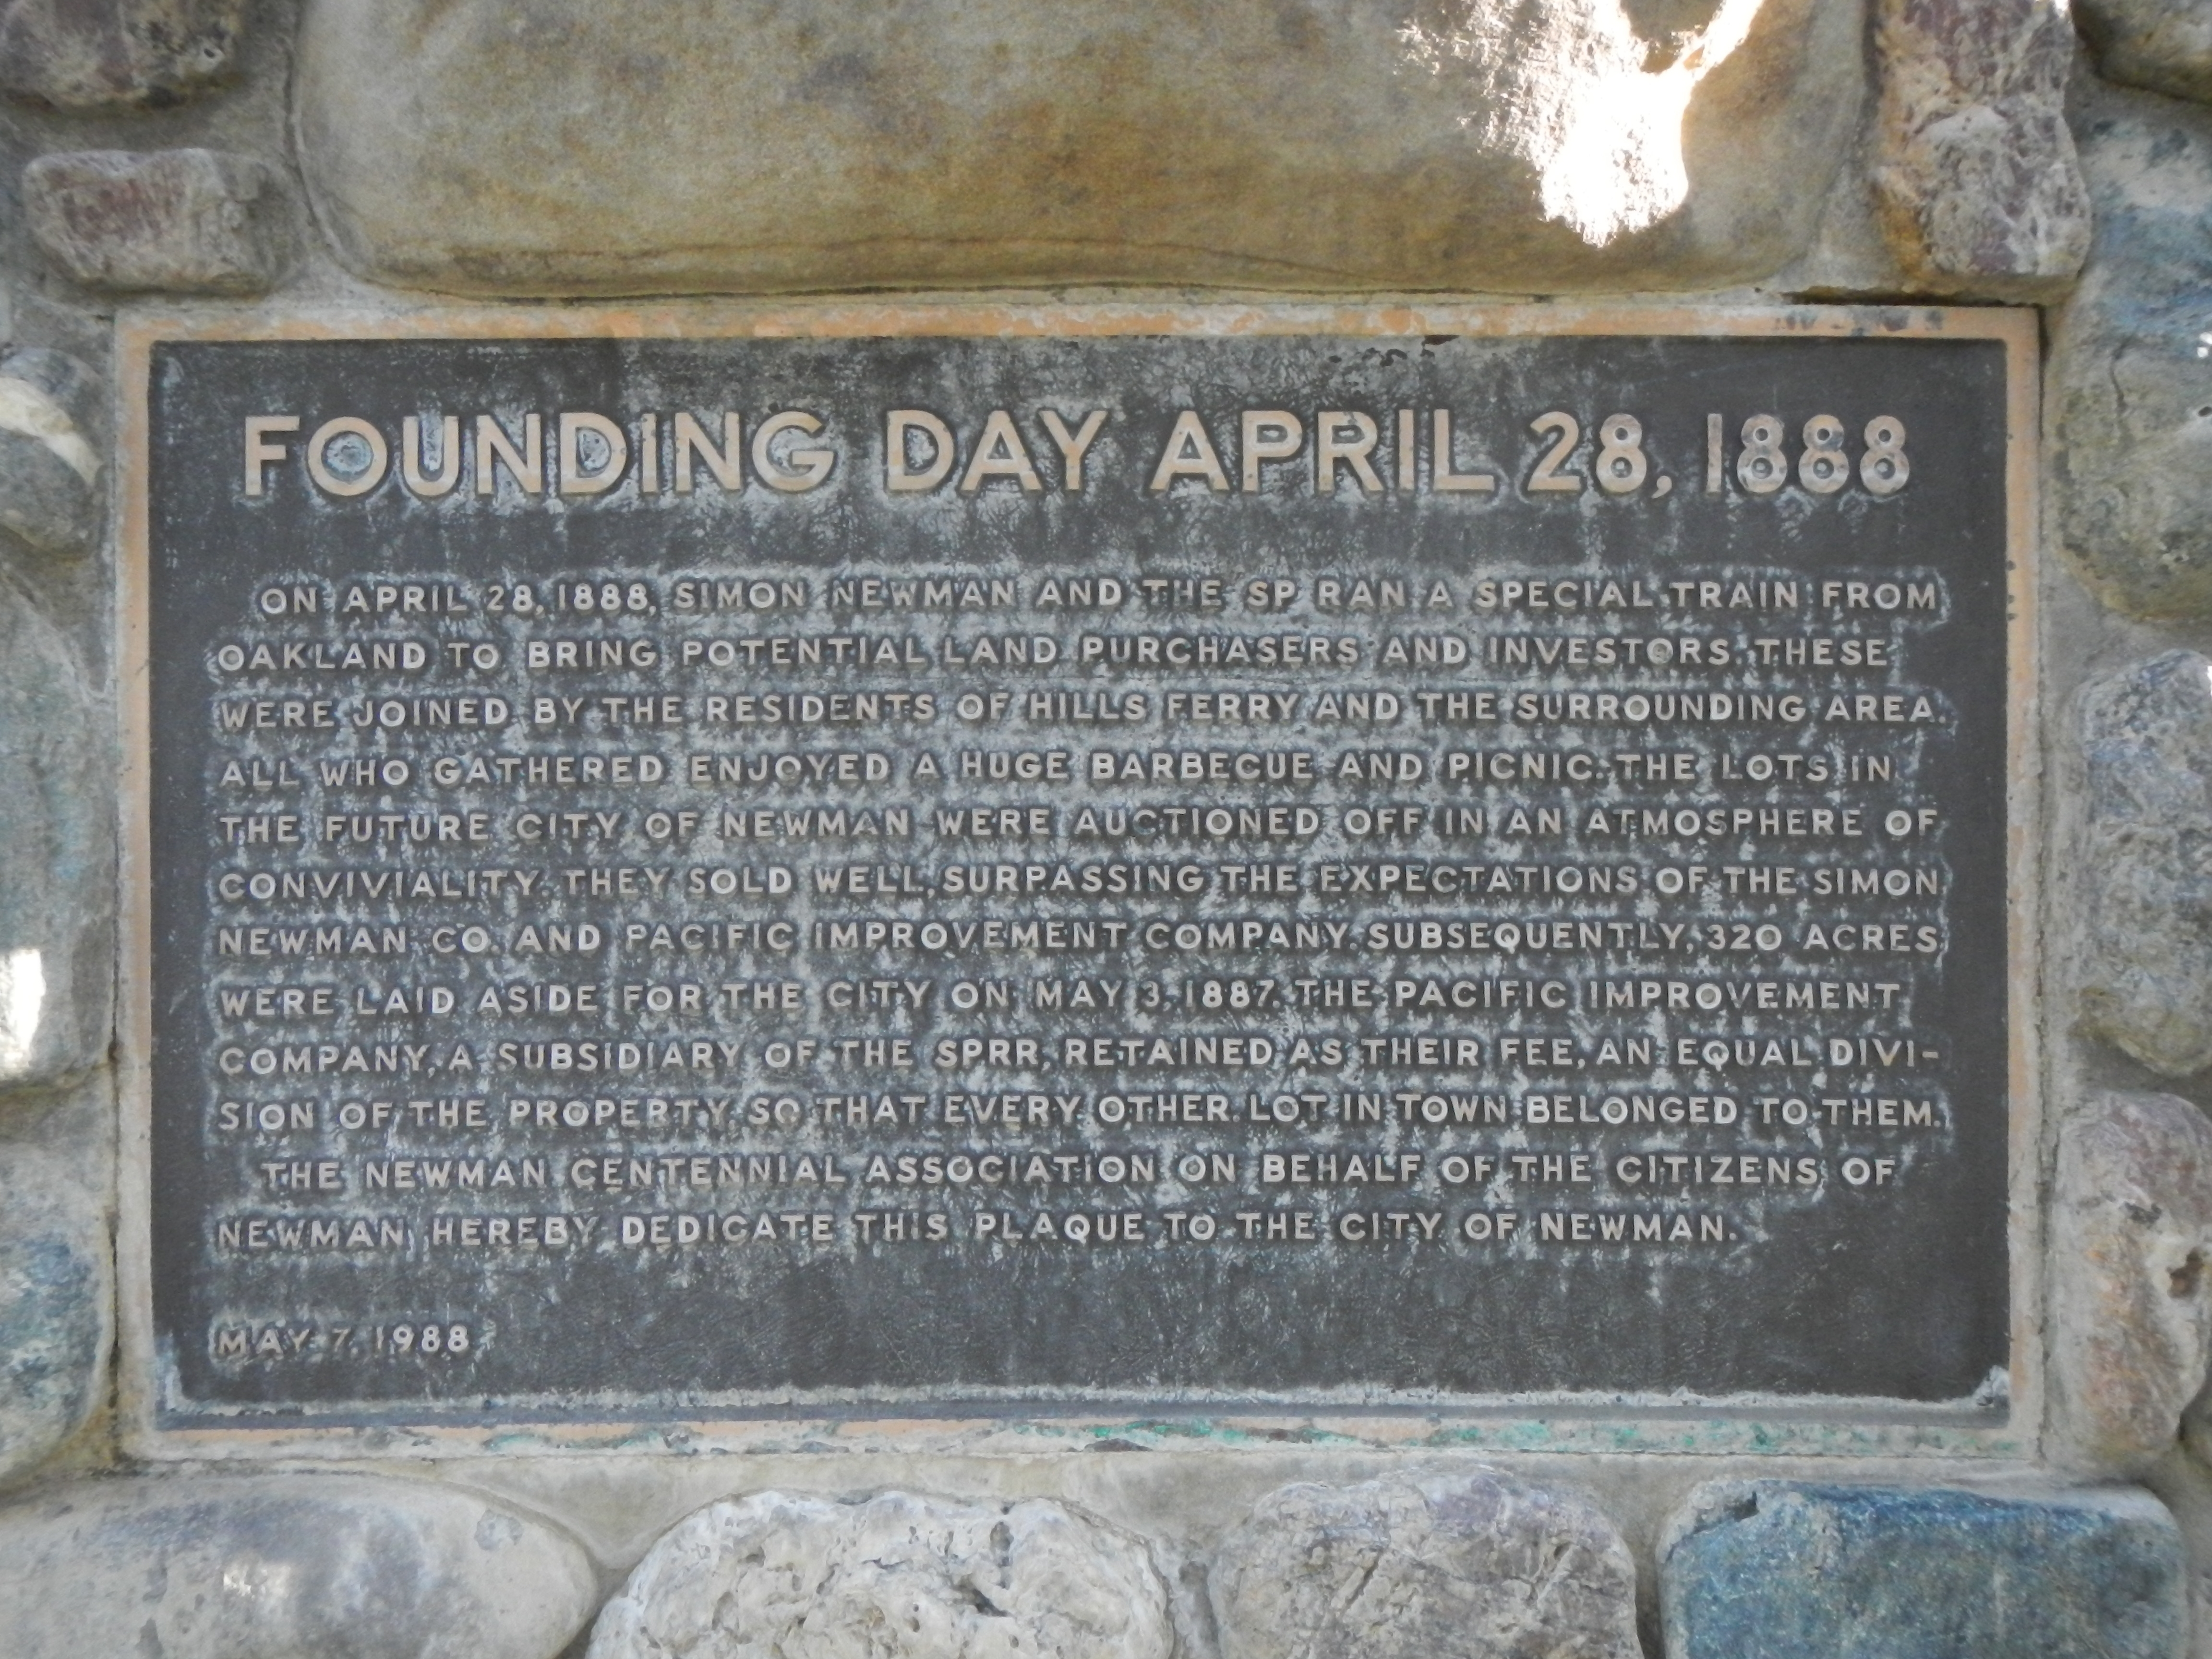 Founding Day April 28, 1888 Marker